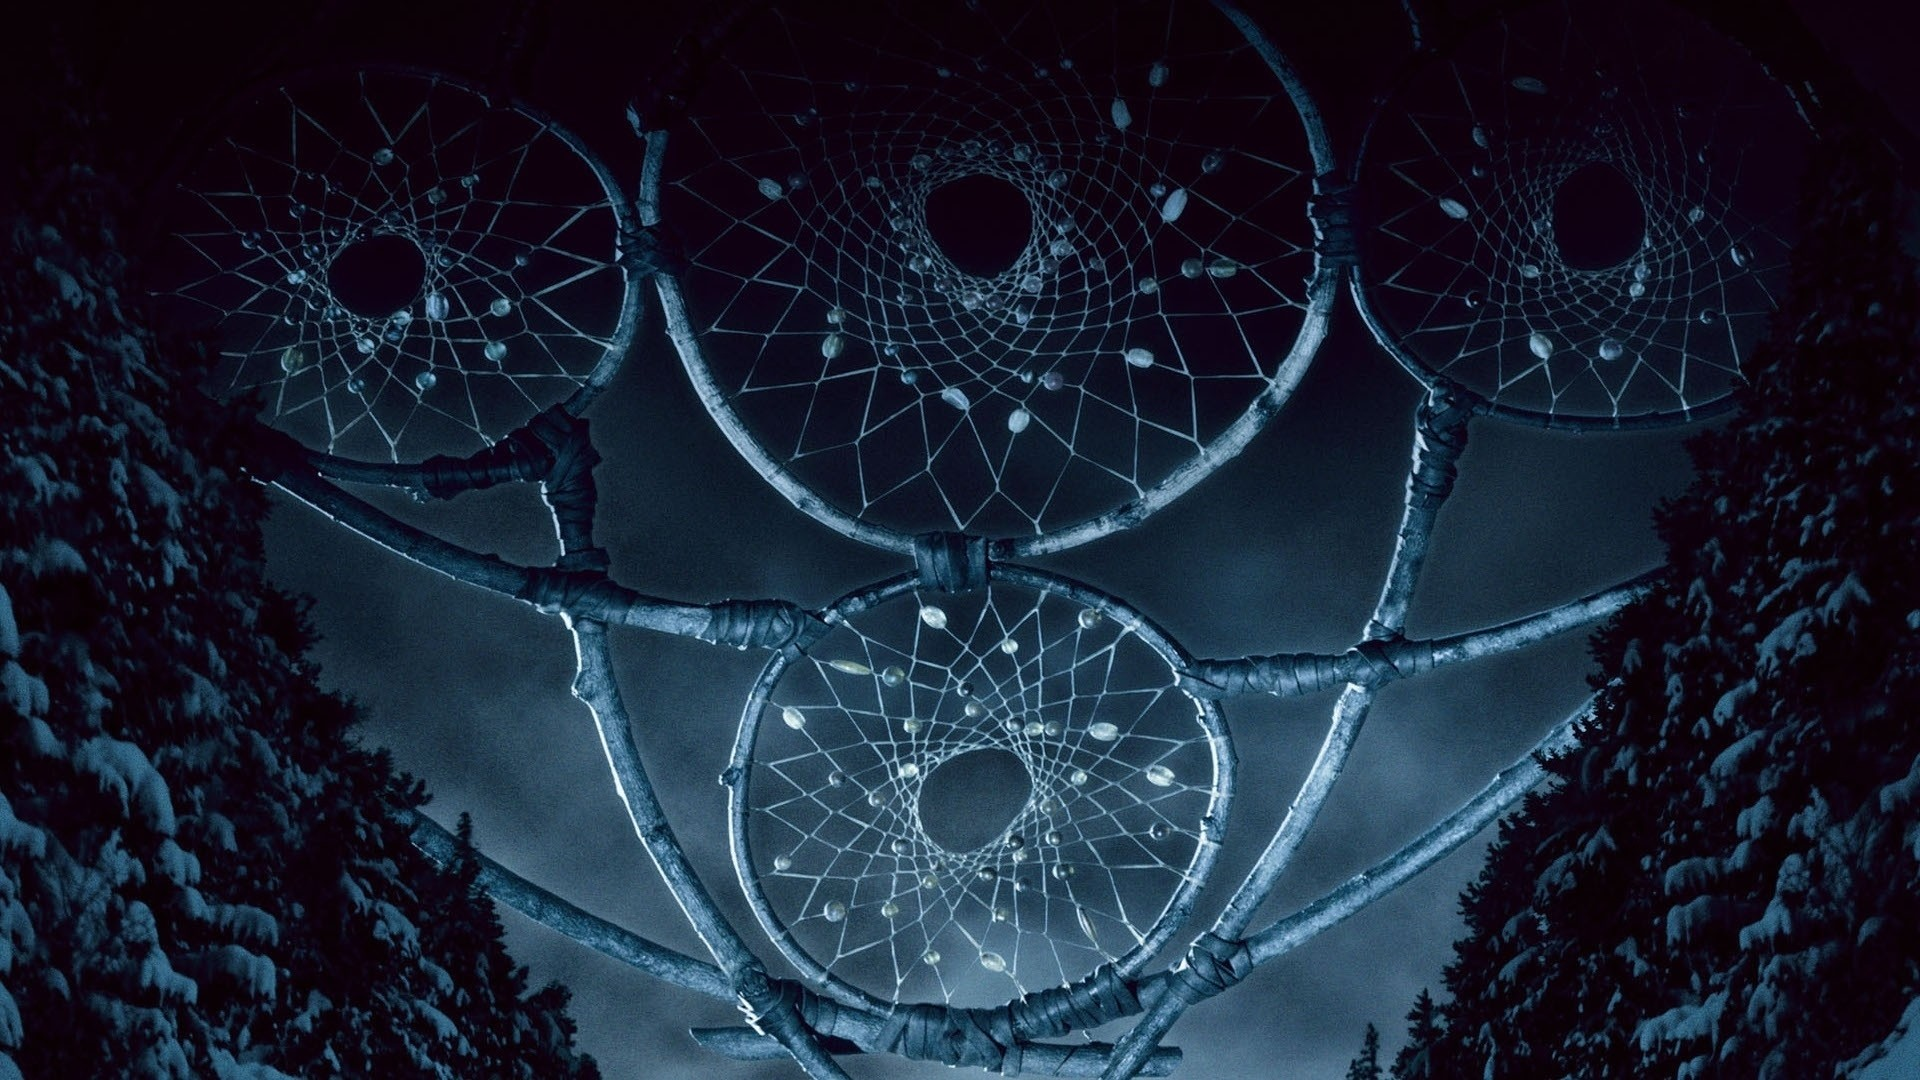 Dreamcatcher Free Wallpaper and Background